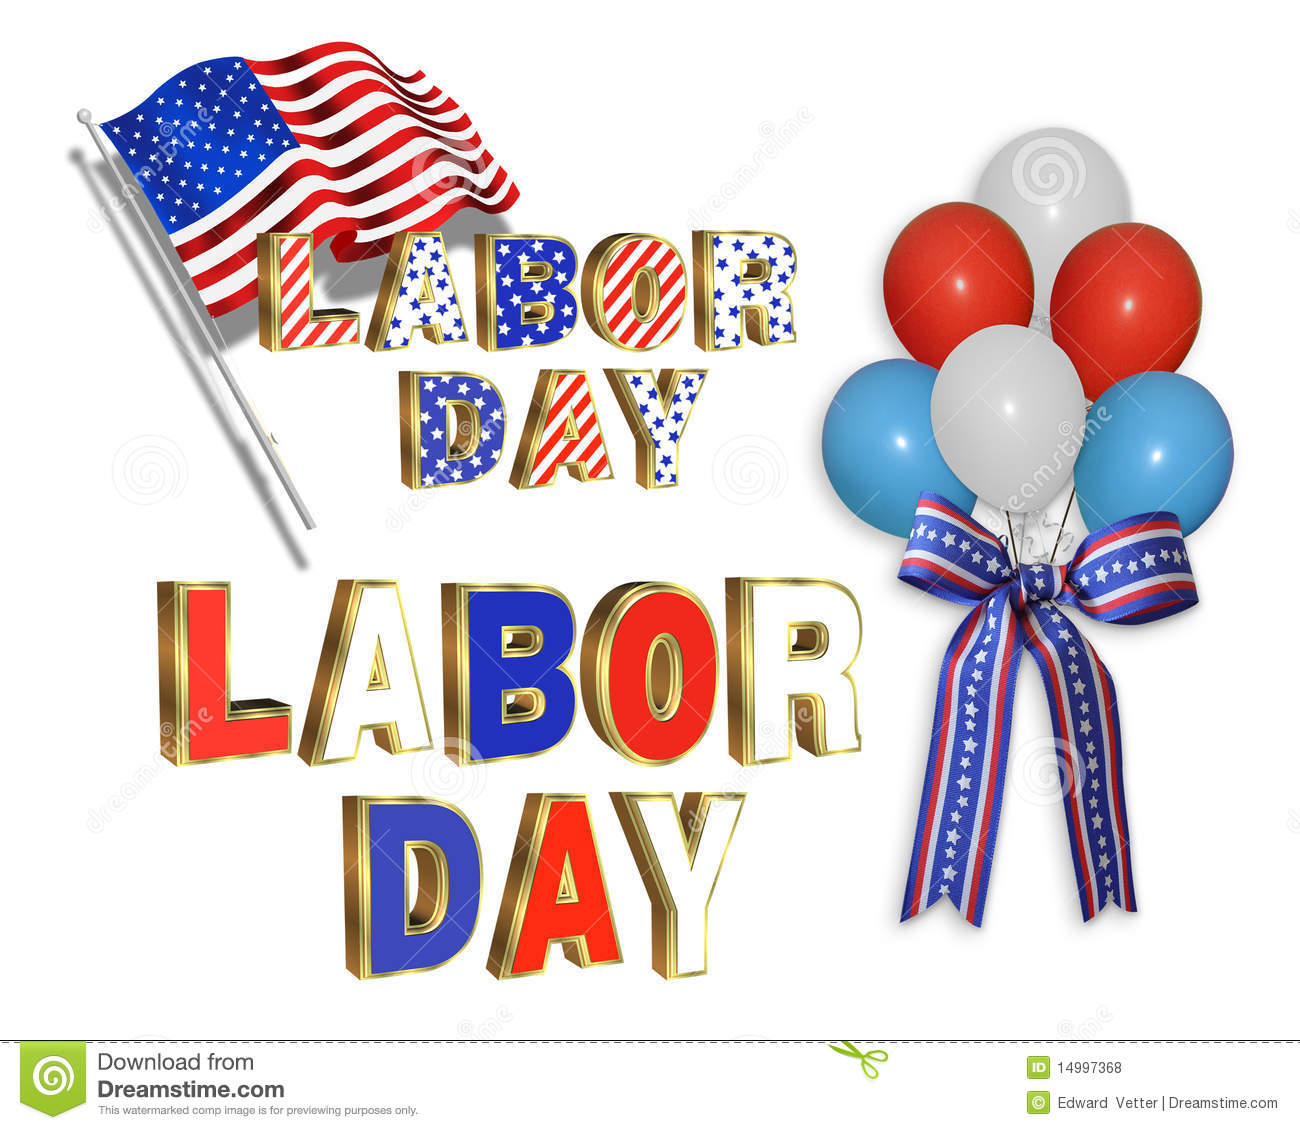 Free clipart images for labor day 4 » Clipart Station.